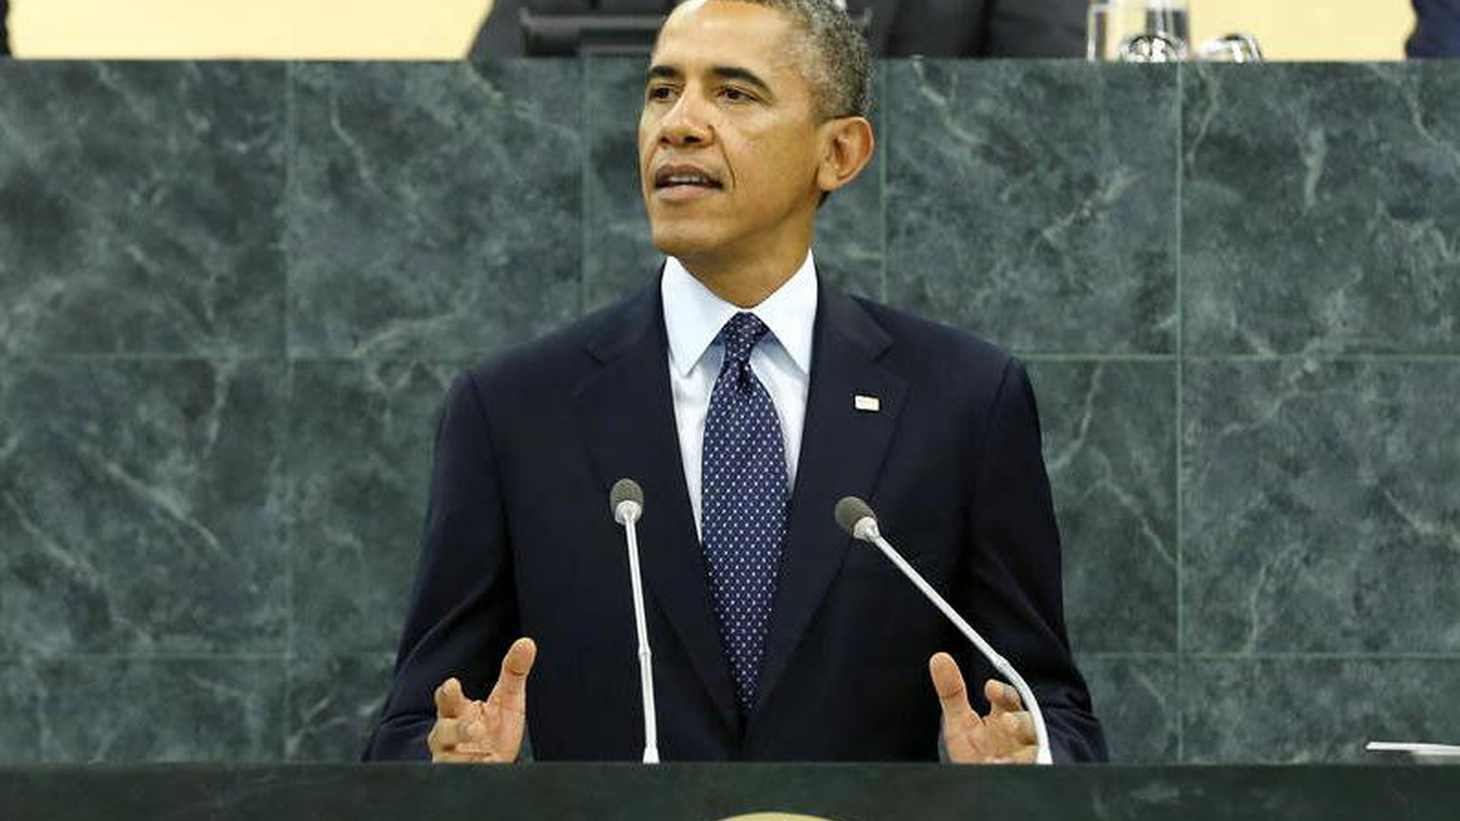 President Obama addressed the UN General Assembly today, promising the US will stay engaged in the Middle East for the rest of his term. We hear conflicting reactions.